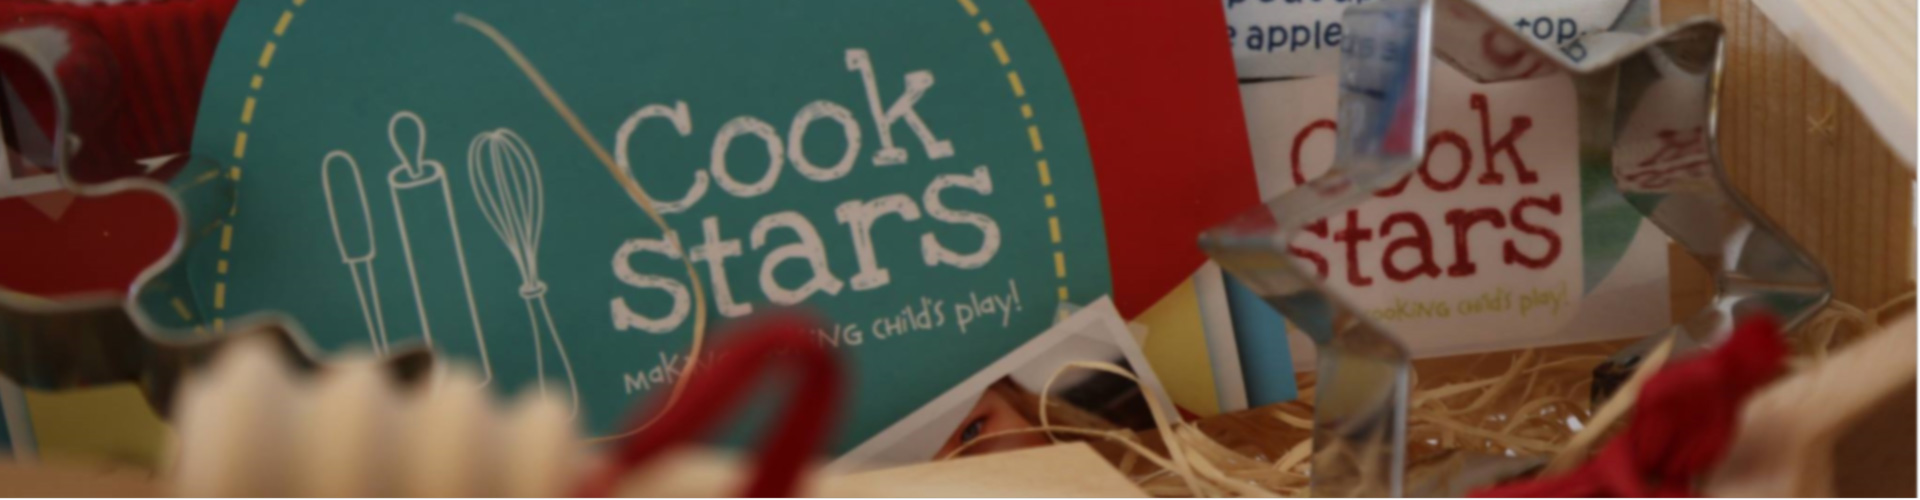 COOK STARS background image